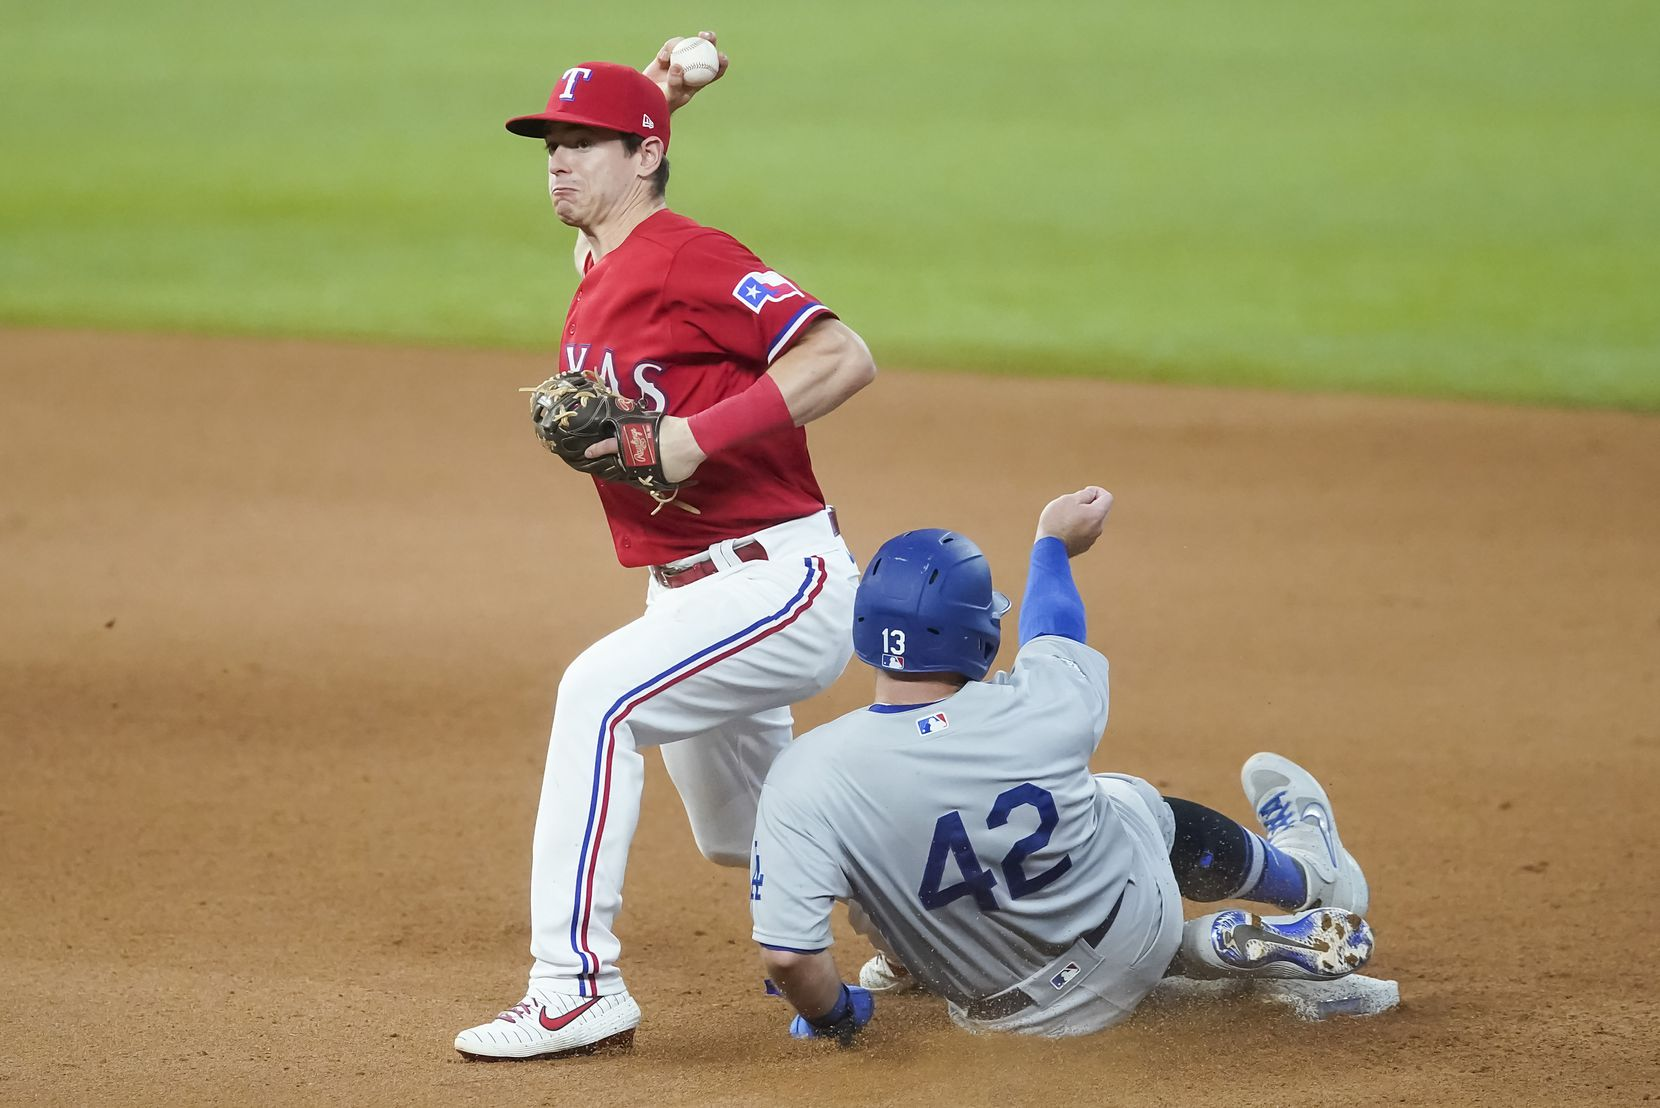 FILE - Rangers second baseman Nick Solak makes a relay over Dodgers third baseman Max Muncy to turn a double play during the seventh inning at Globe Life Field on Sunday, Aug. 30, 2020.